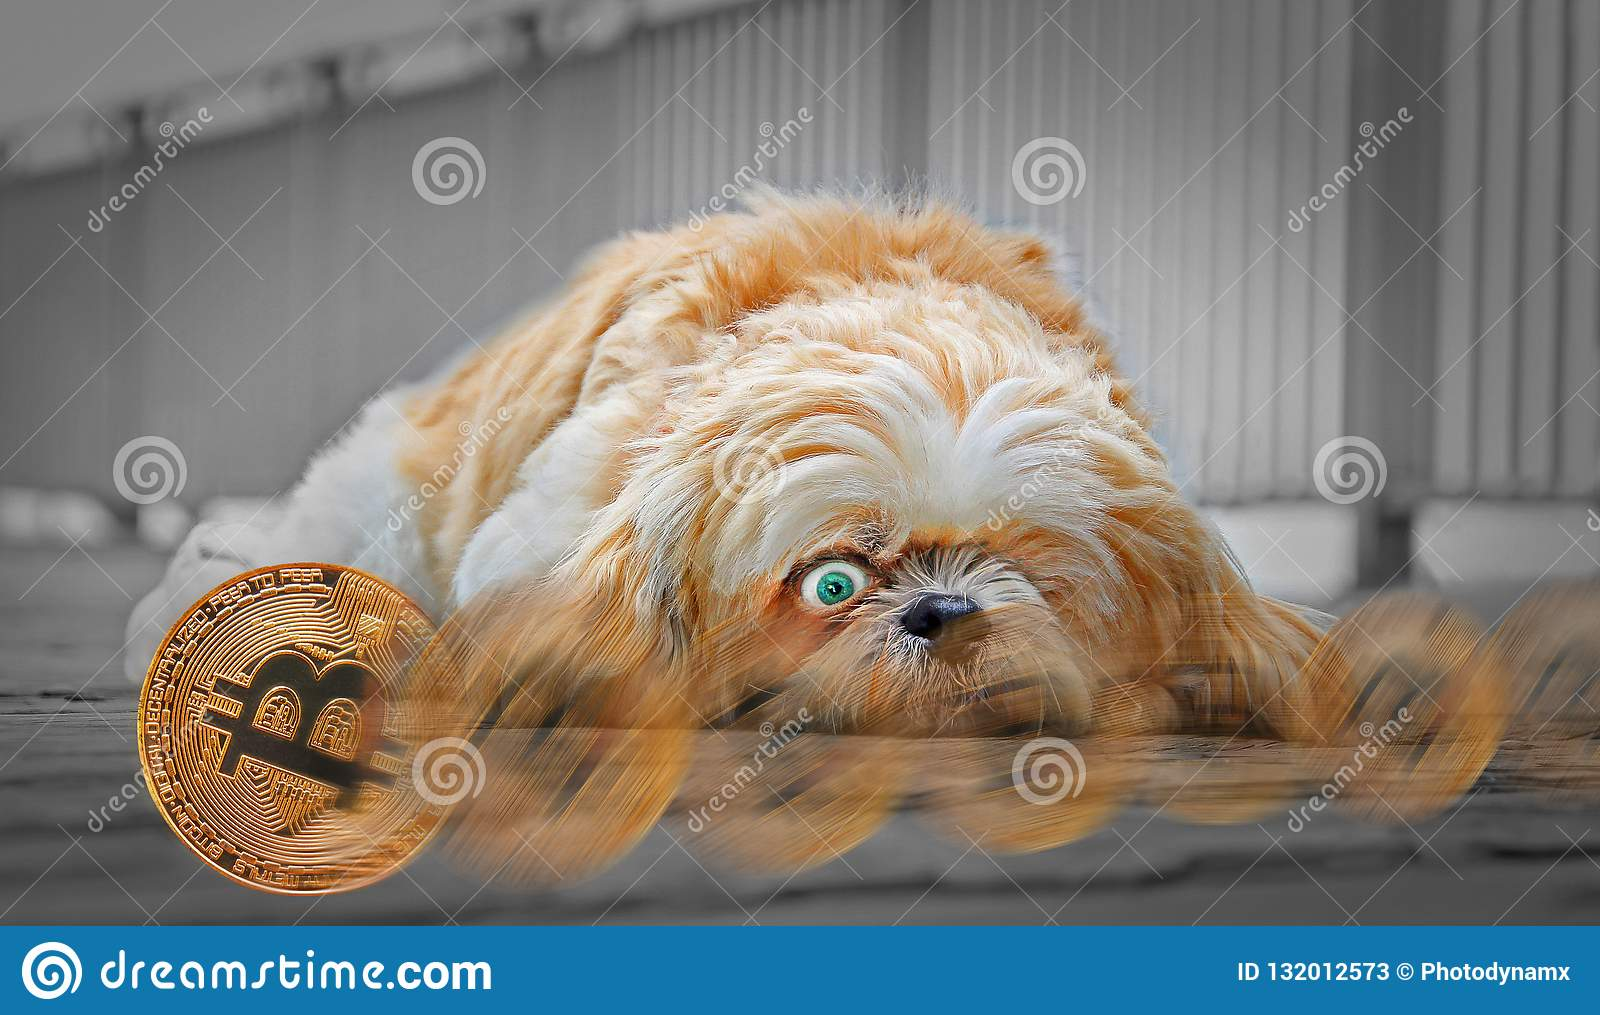 bitcoins pictures of dogs